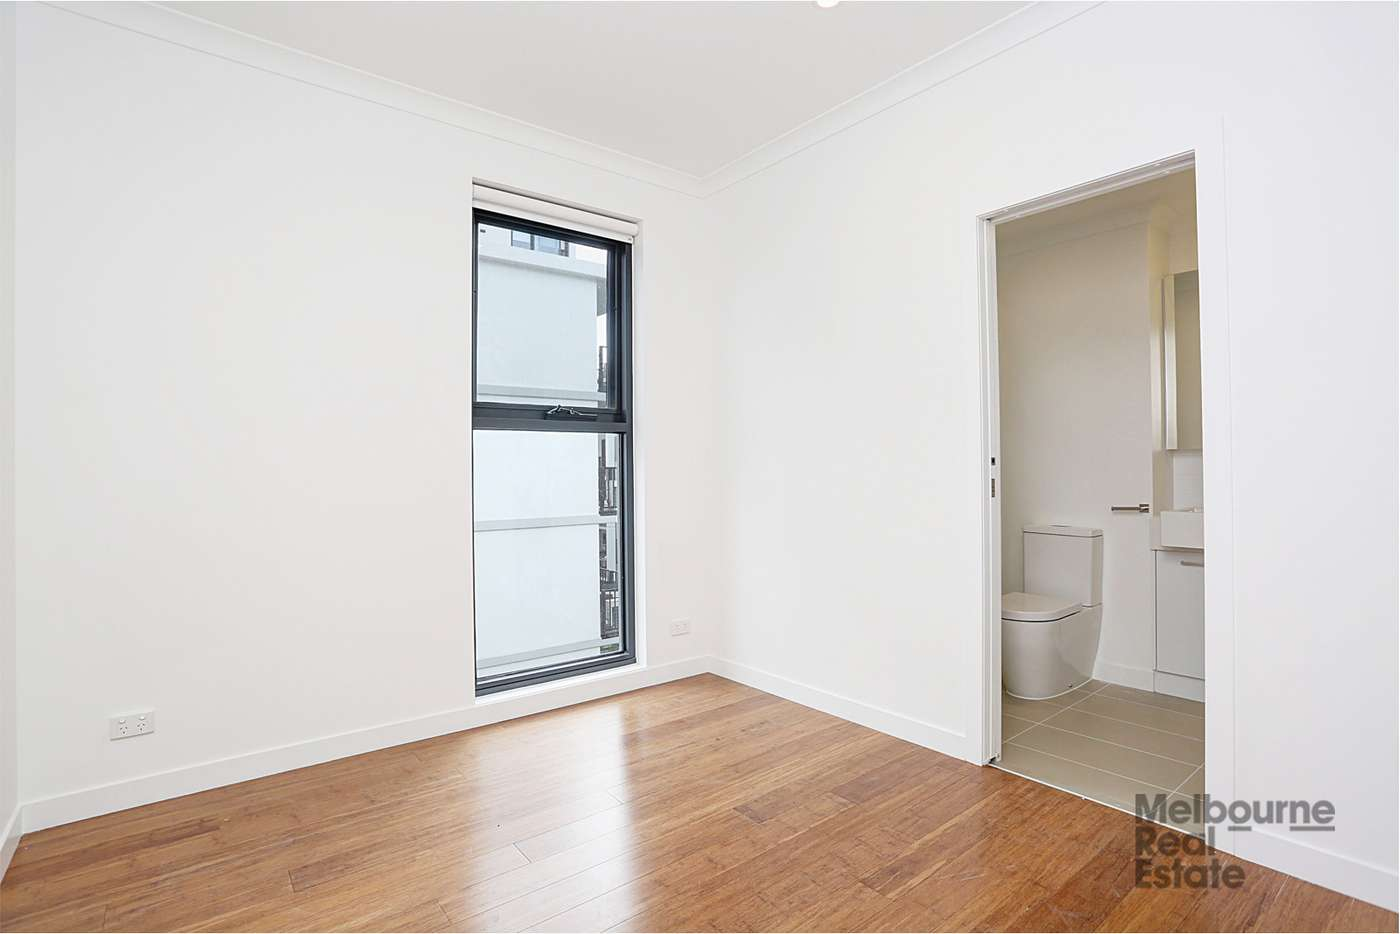 Fifth view of Homely apartment listing, 308/12 Olive York Way, Brunswick West VIC 3055